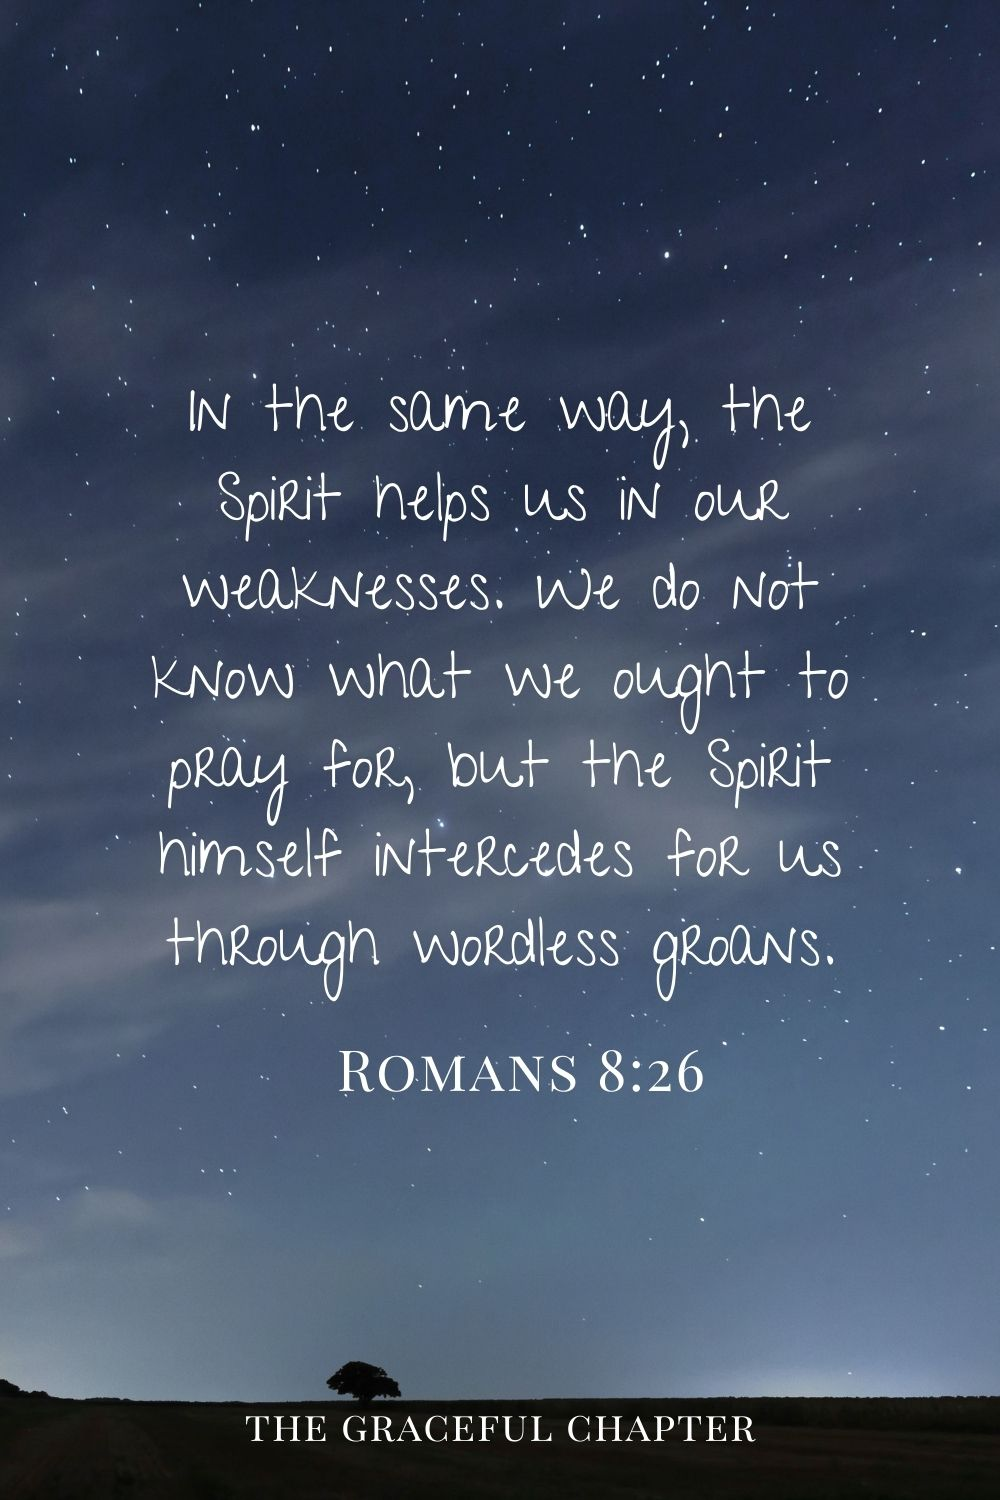 In the same way, the Spirit helps us in our weaknesses. We do not know what we ought to pray for, but the Spirit himself intercedes for us through wordless groans. Romans 8:26